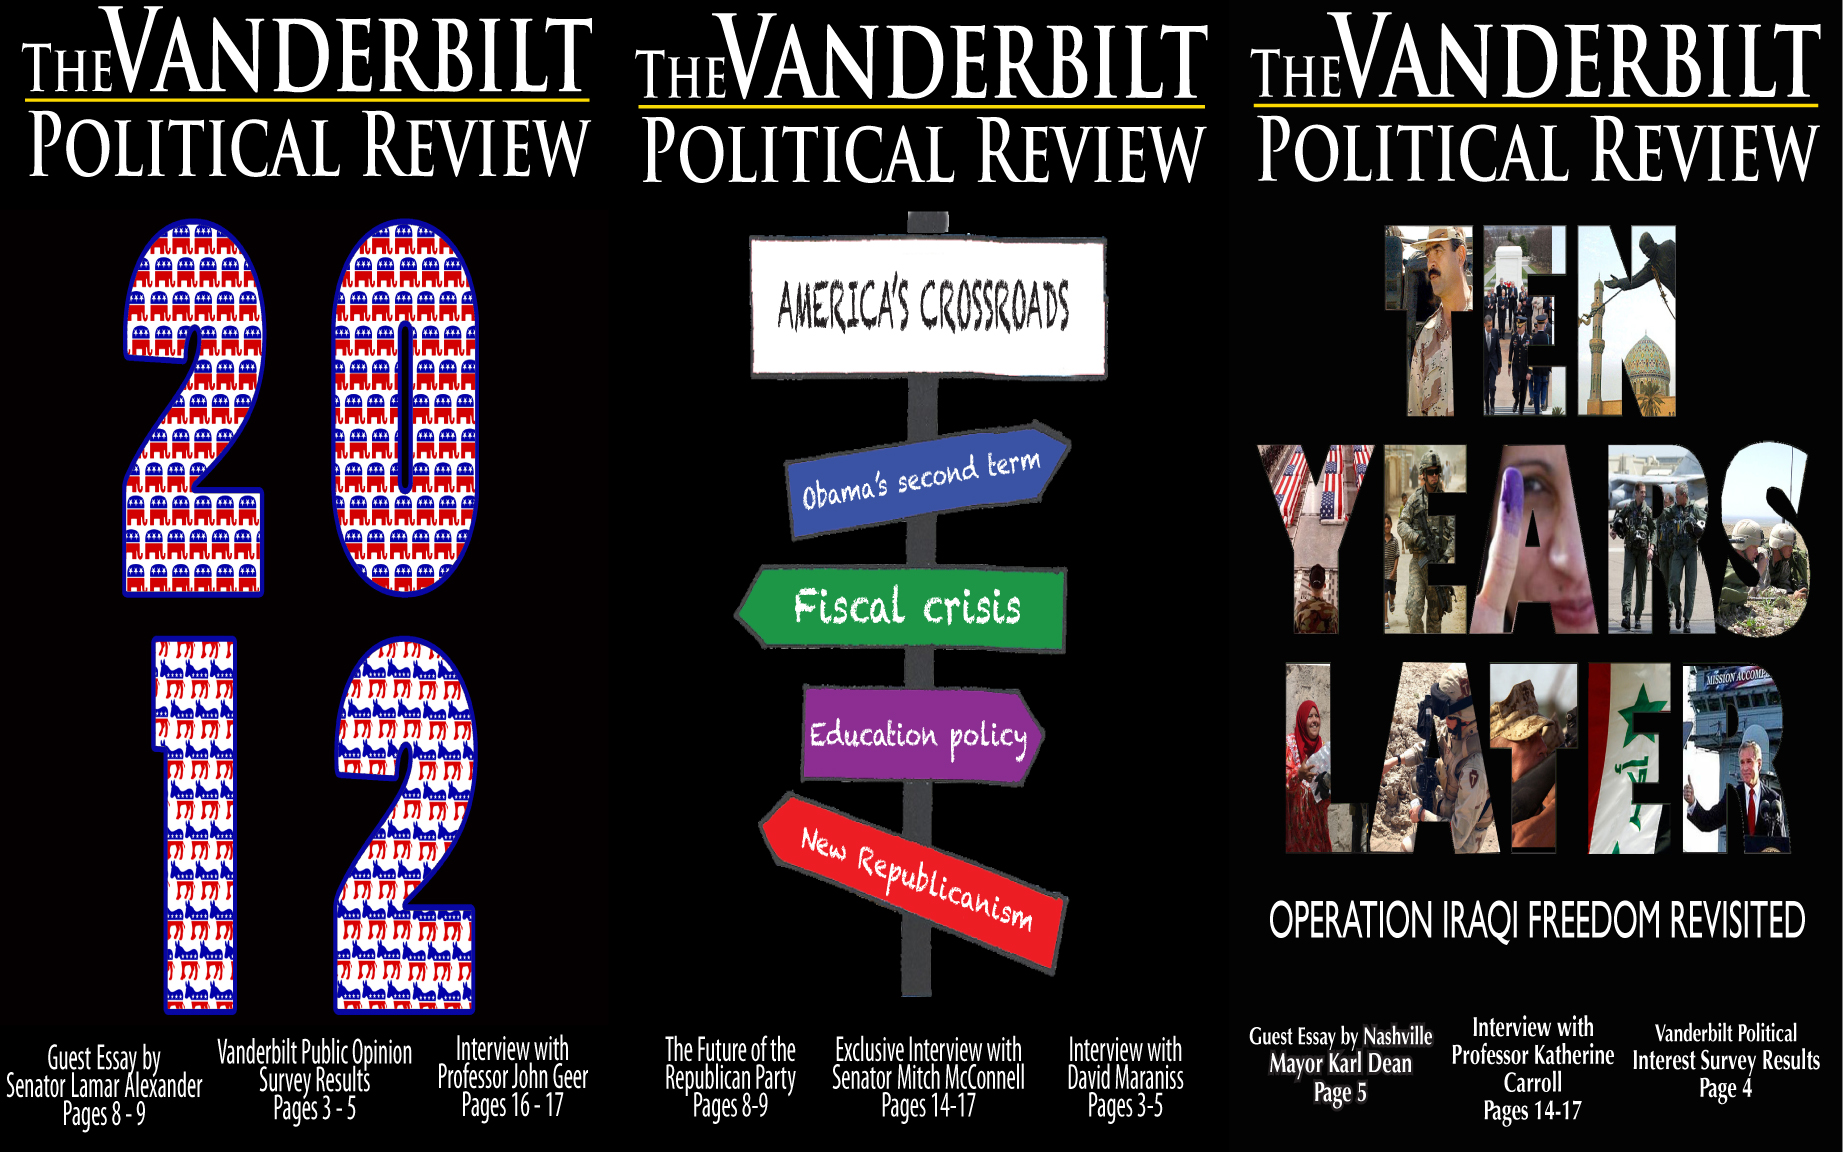 VPR 2012-2013 Year in Review